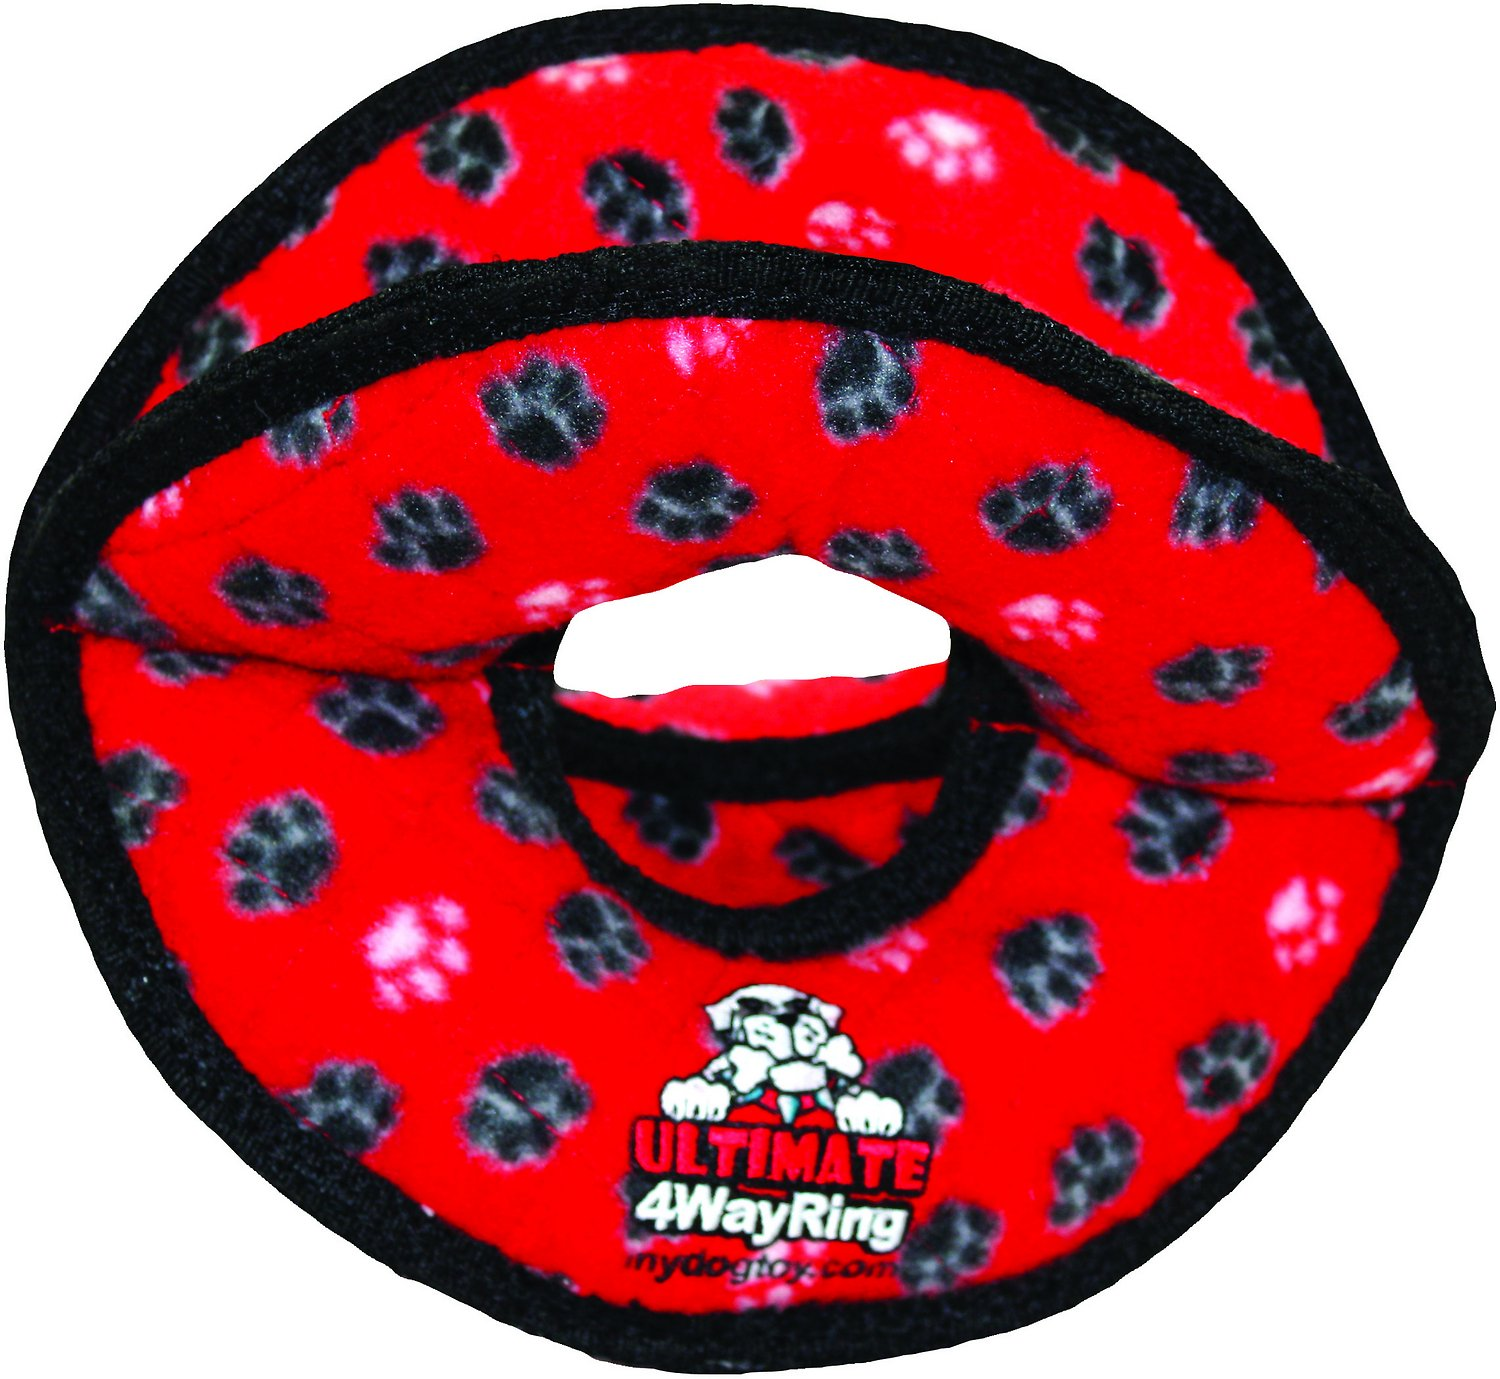 Tuffy's Ultimate 4-Way Ring Dog Toy, Red Paws